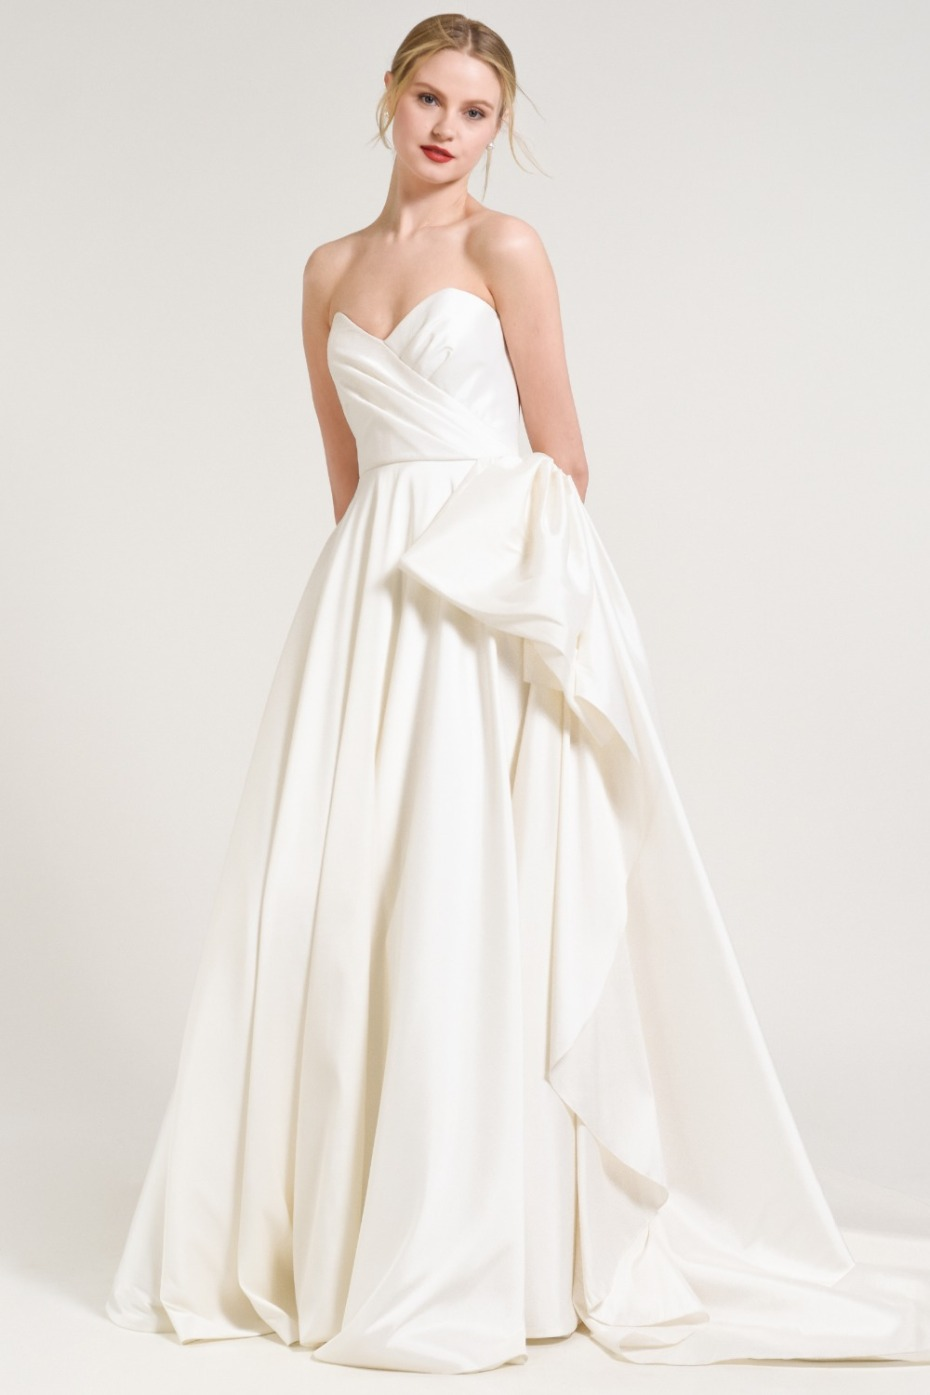 Things to Know Before Buying a Wedding Dress